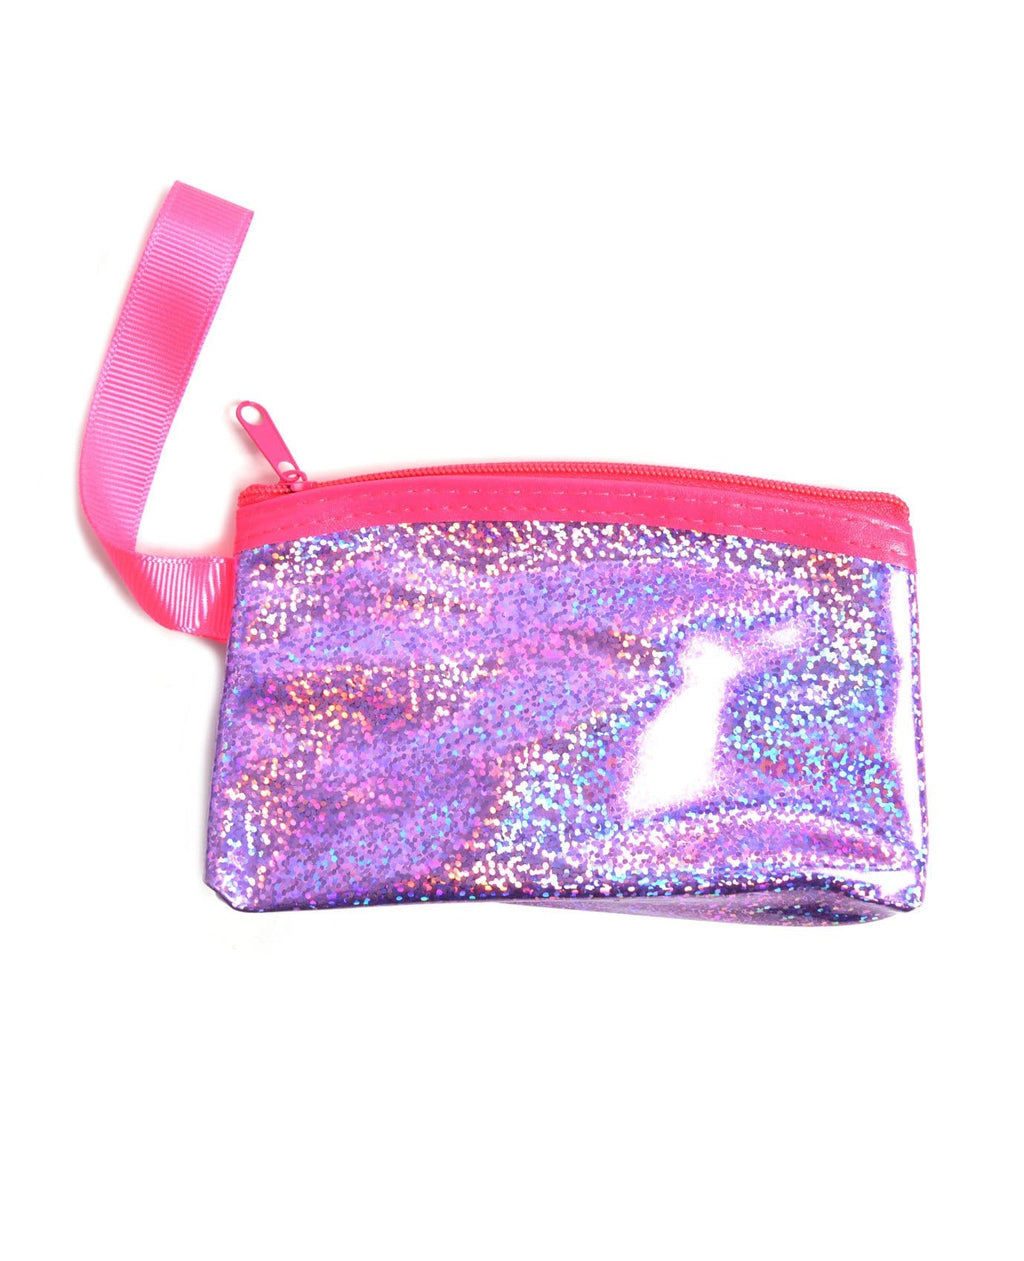 Less Bitter More Glitter Coin Purse, ACCESSORIES